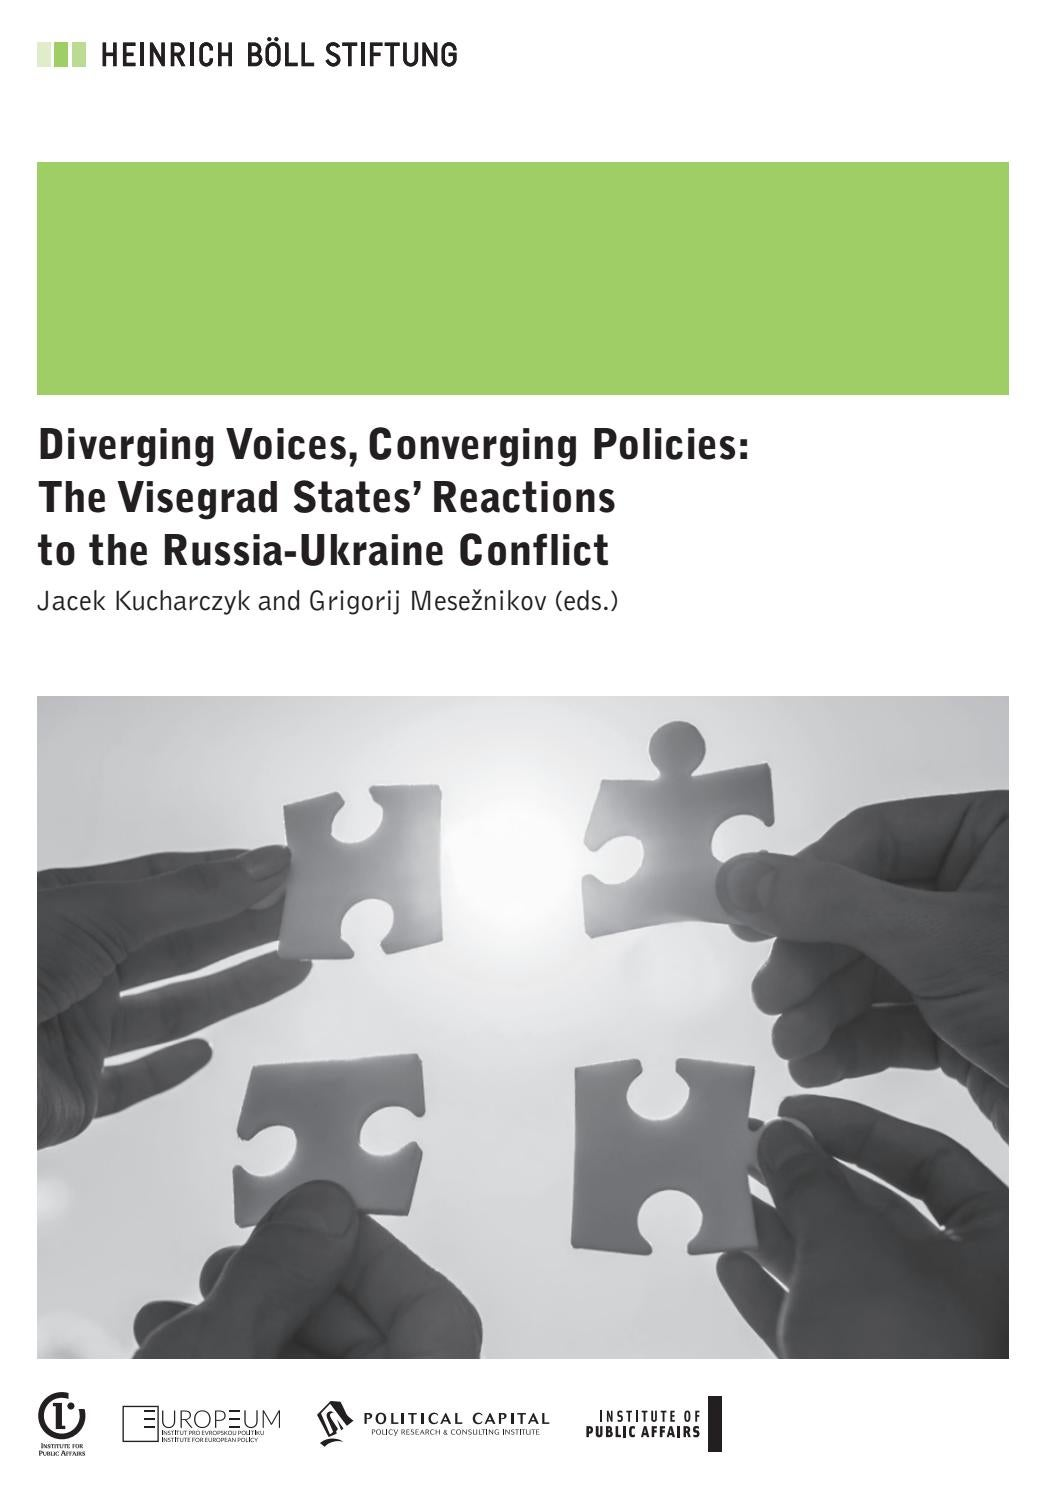 Up election 2017 behind sp congress alliance lies the open pursuit of a polarisating agenda firstpost - Diverging Voices Converging Policies Visegrad States Russia Ukraine Conflict By Fundacja Im Heinricha Boella Issuu